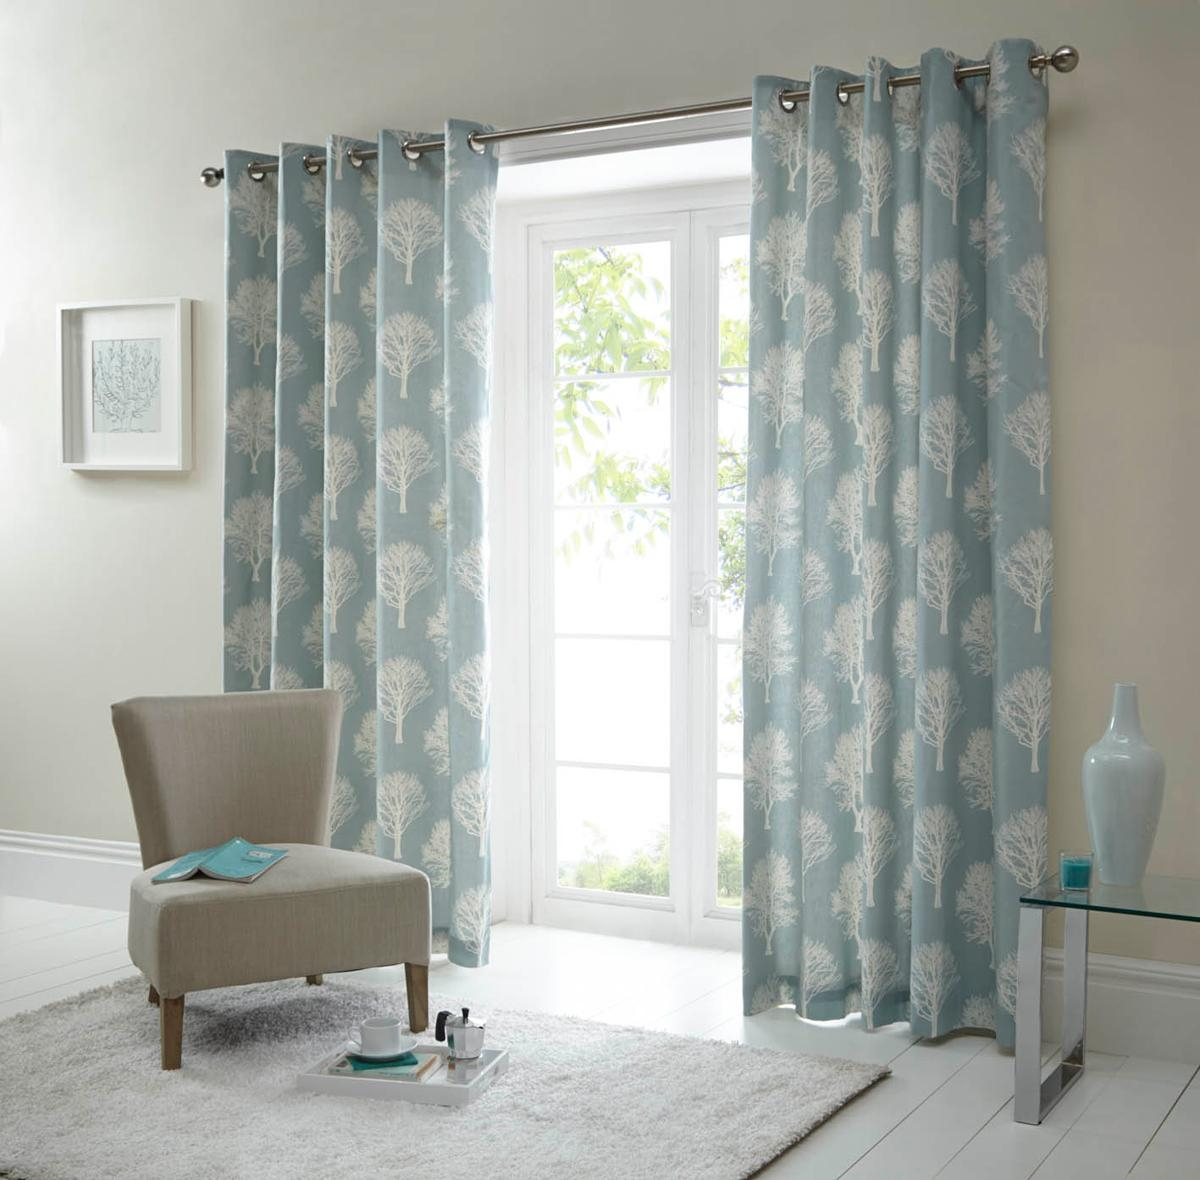 Woodland Ready Made Eyelet Curtains In Duck Egg Terrys Fabrics Intended For Ready Made Draperies (Image 15 of 15)